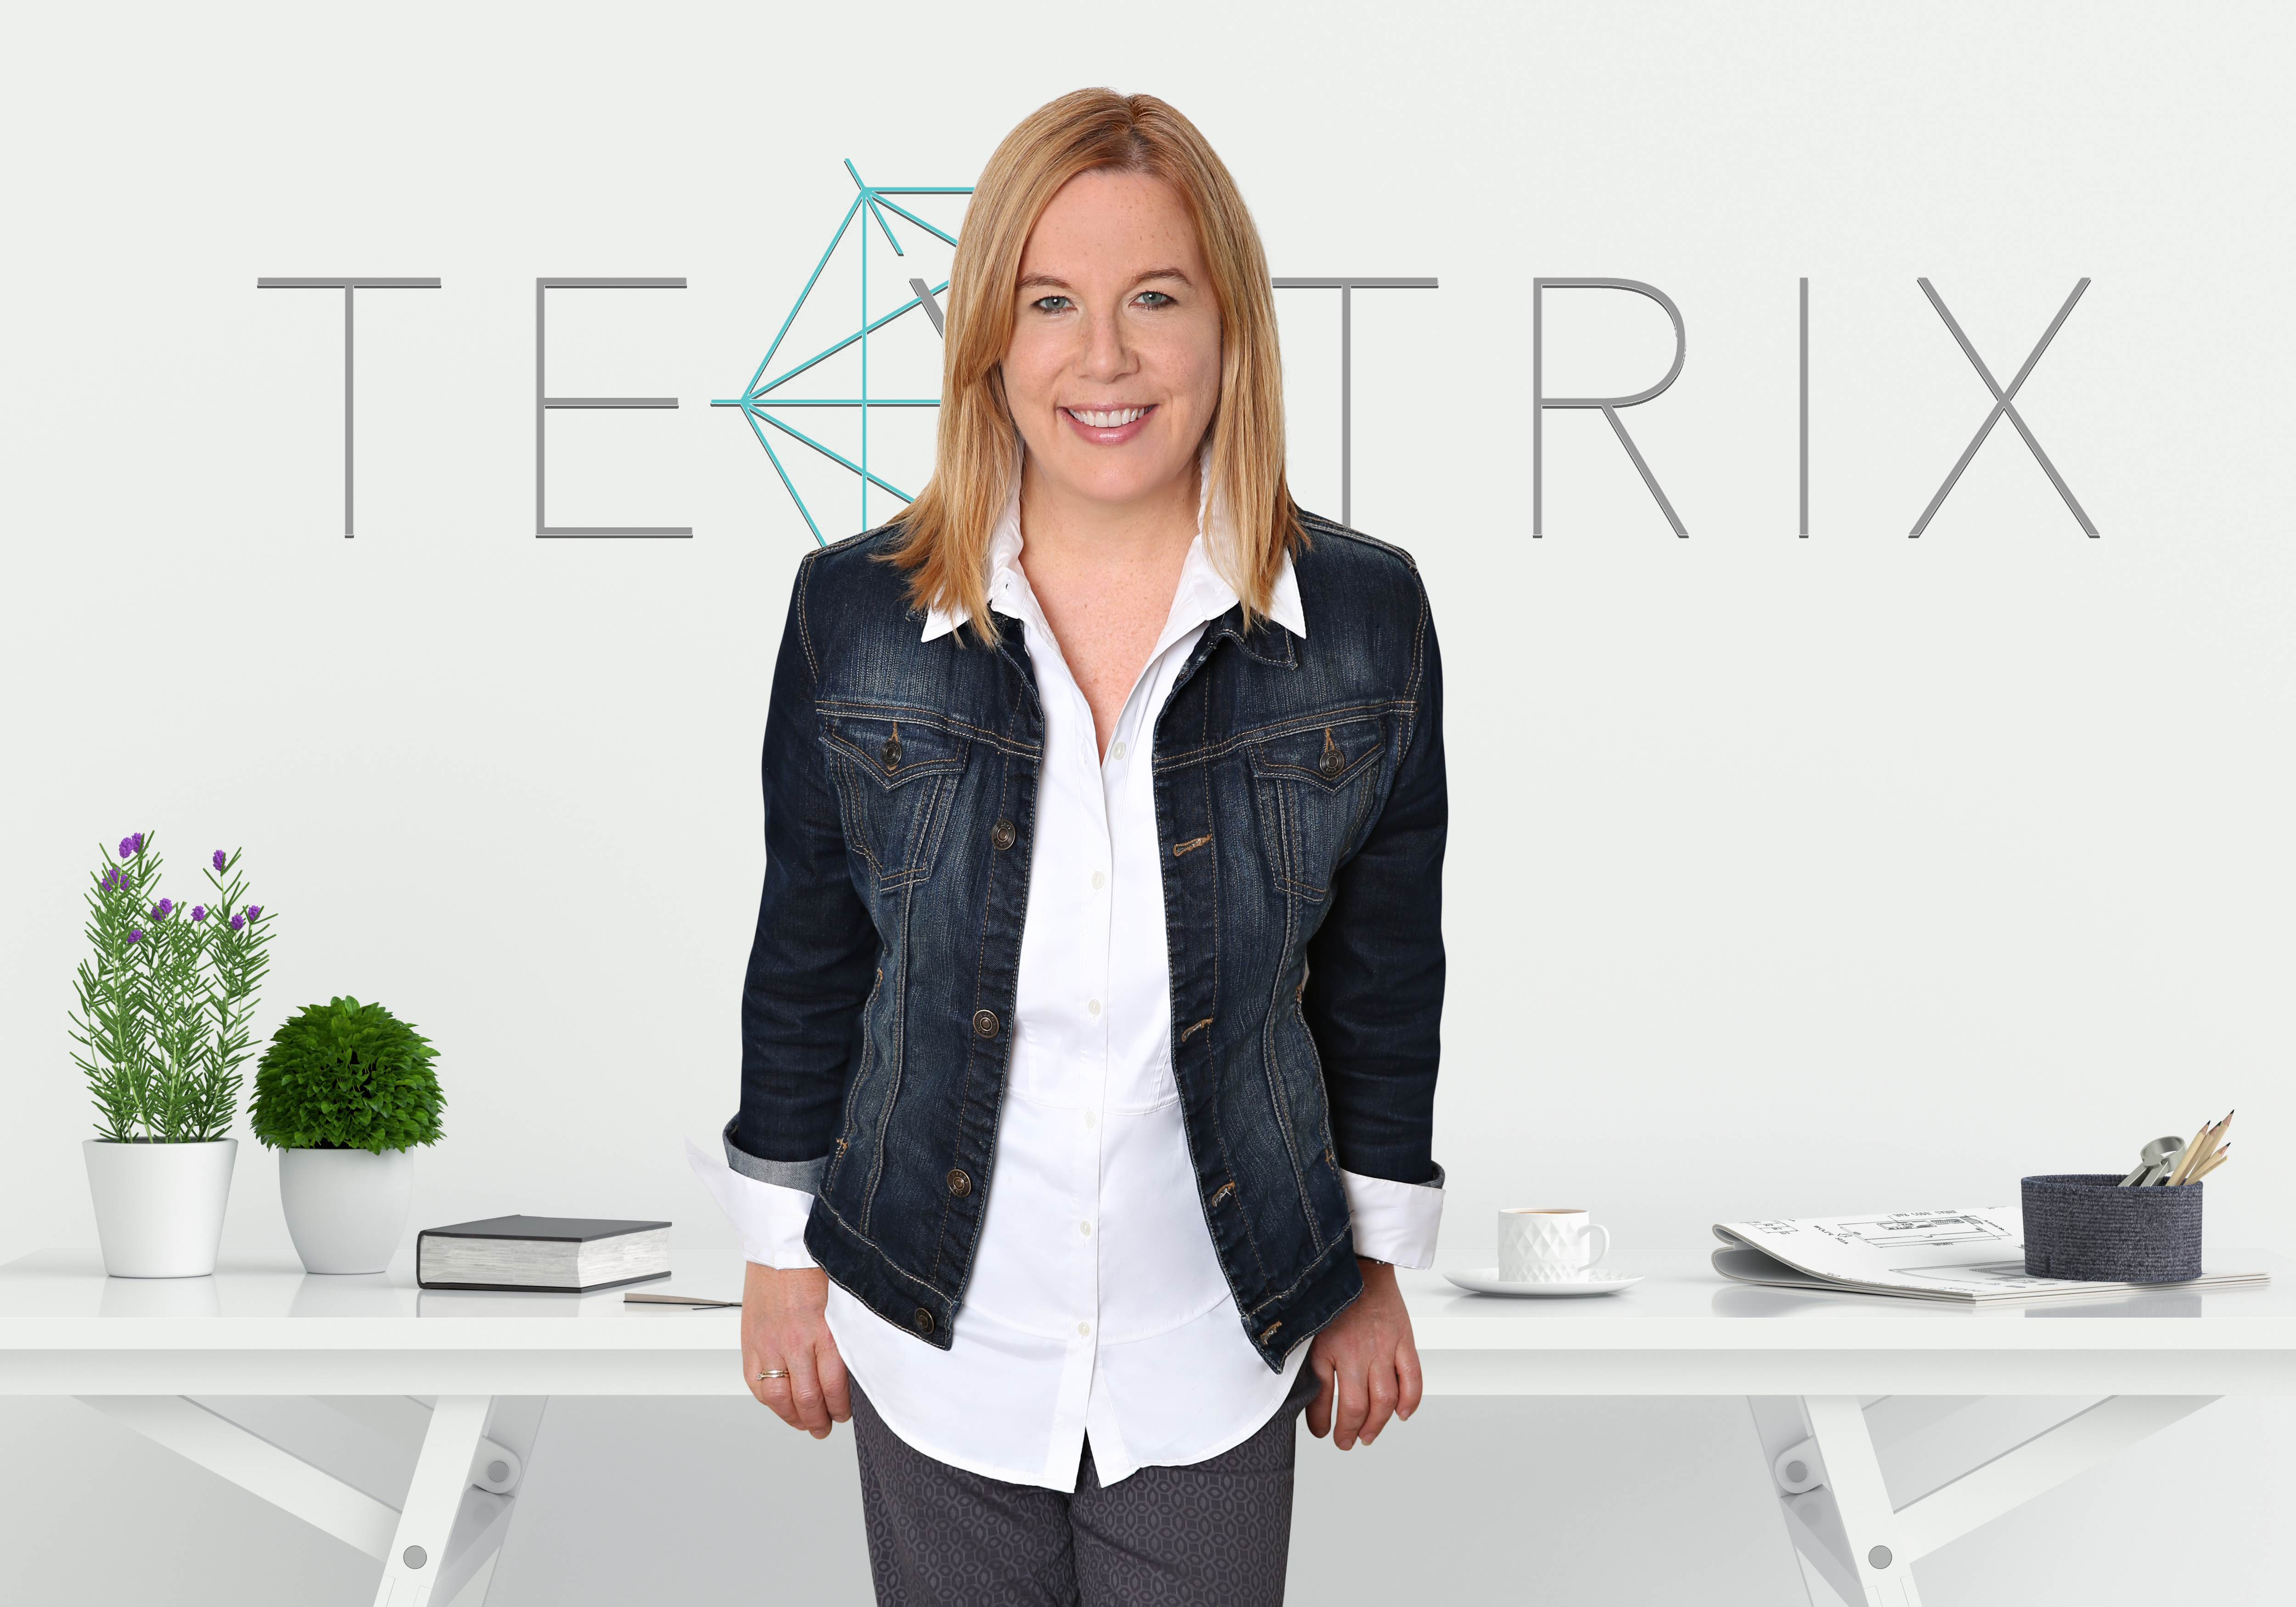 A woman with shoulder length red/blond hair stands in front of a table wearing a white shirt and denim jacket. She is smiling